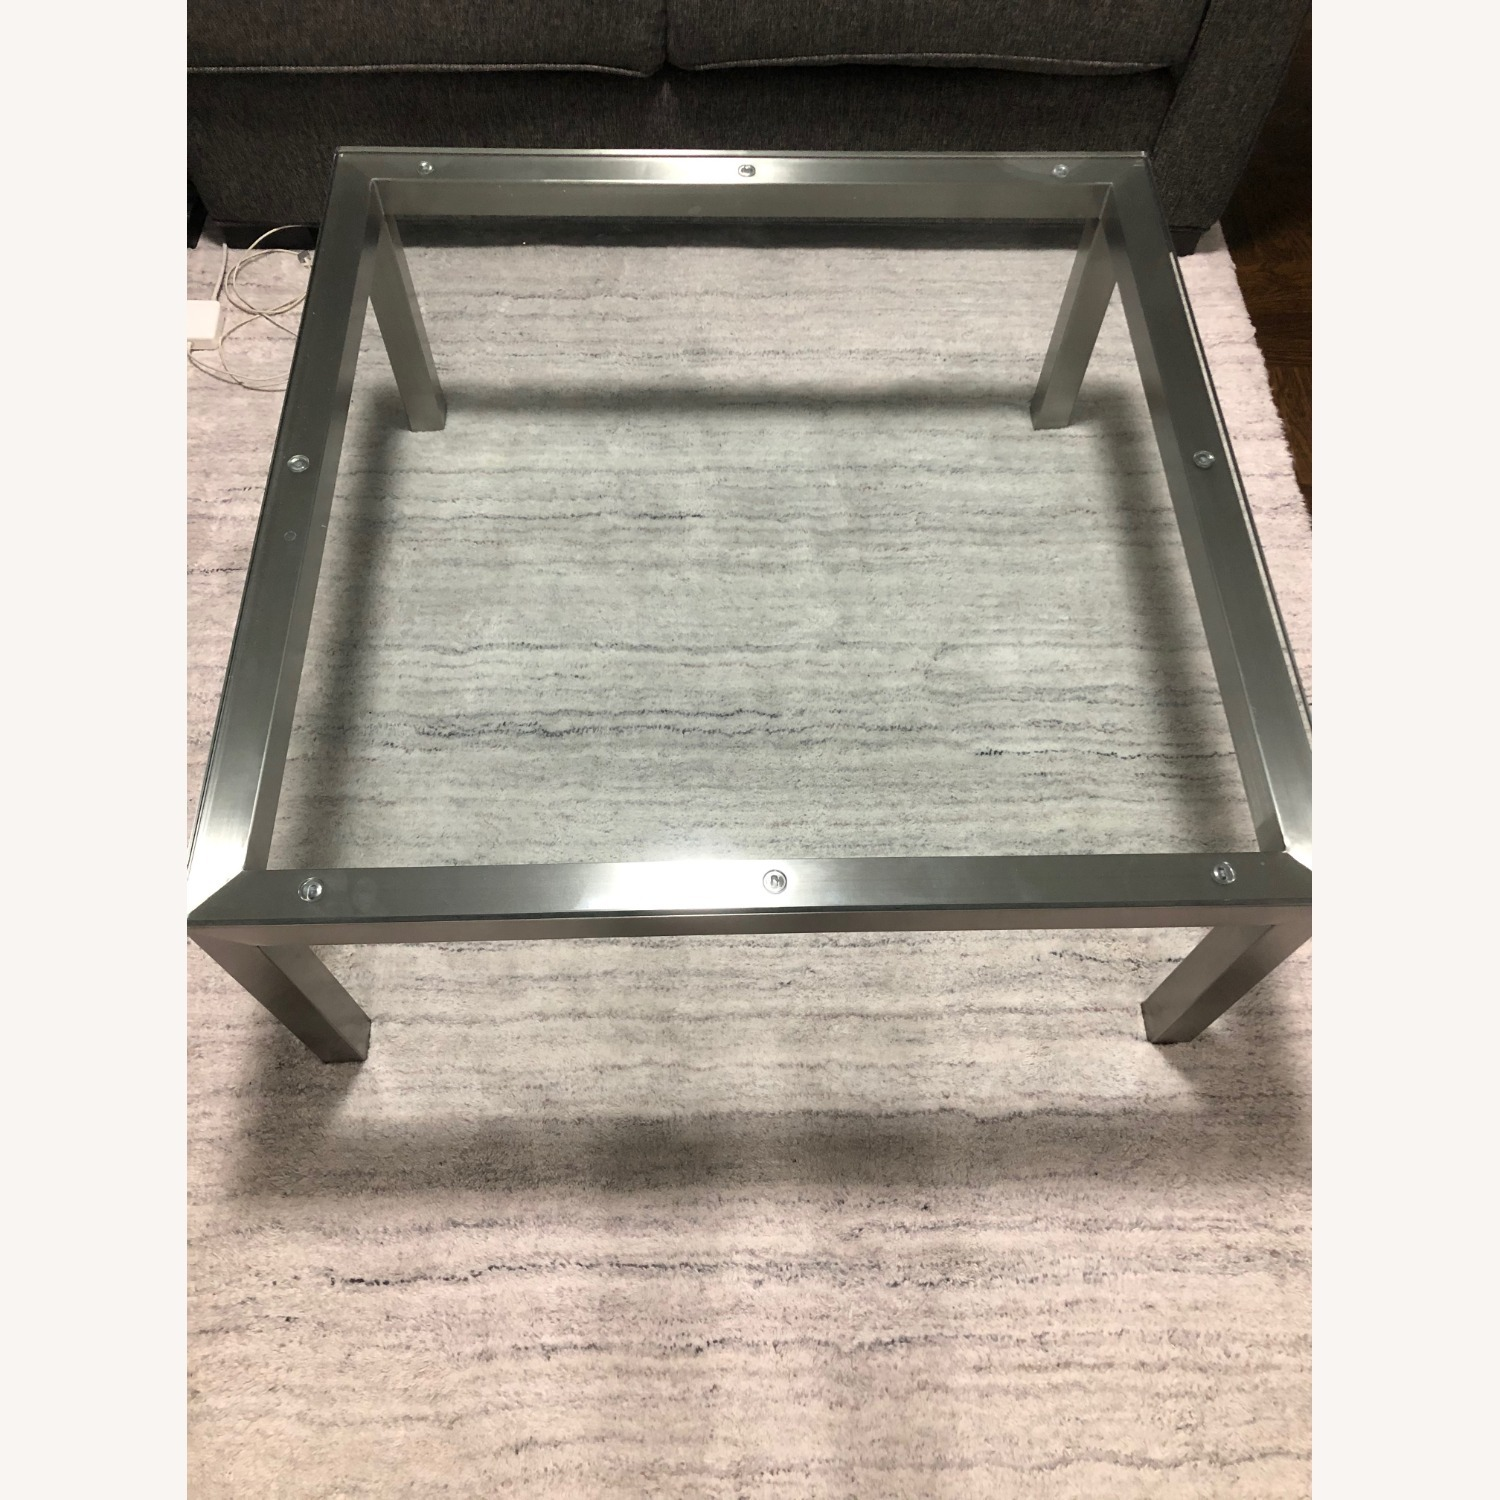 Crate & Barrel Parson's Glass Square Coffee Table - image-2